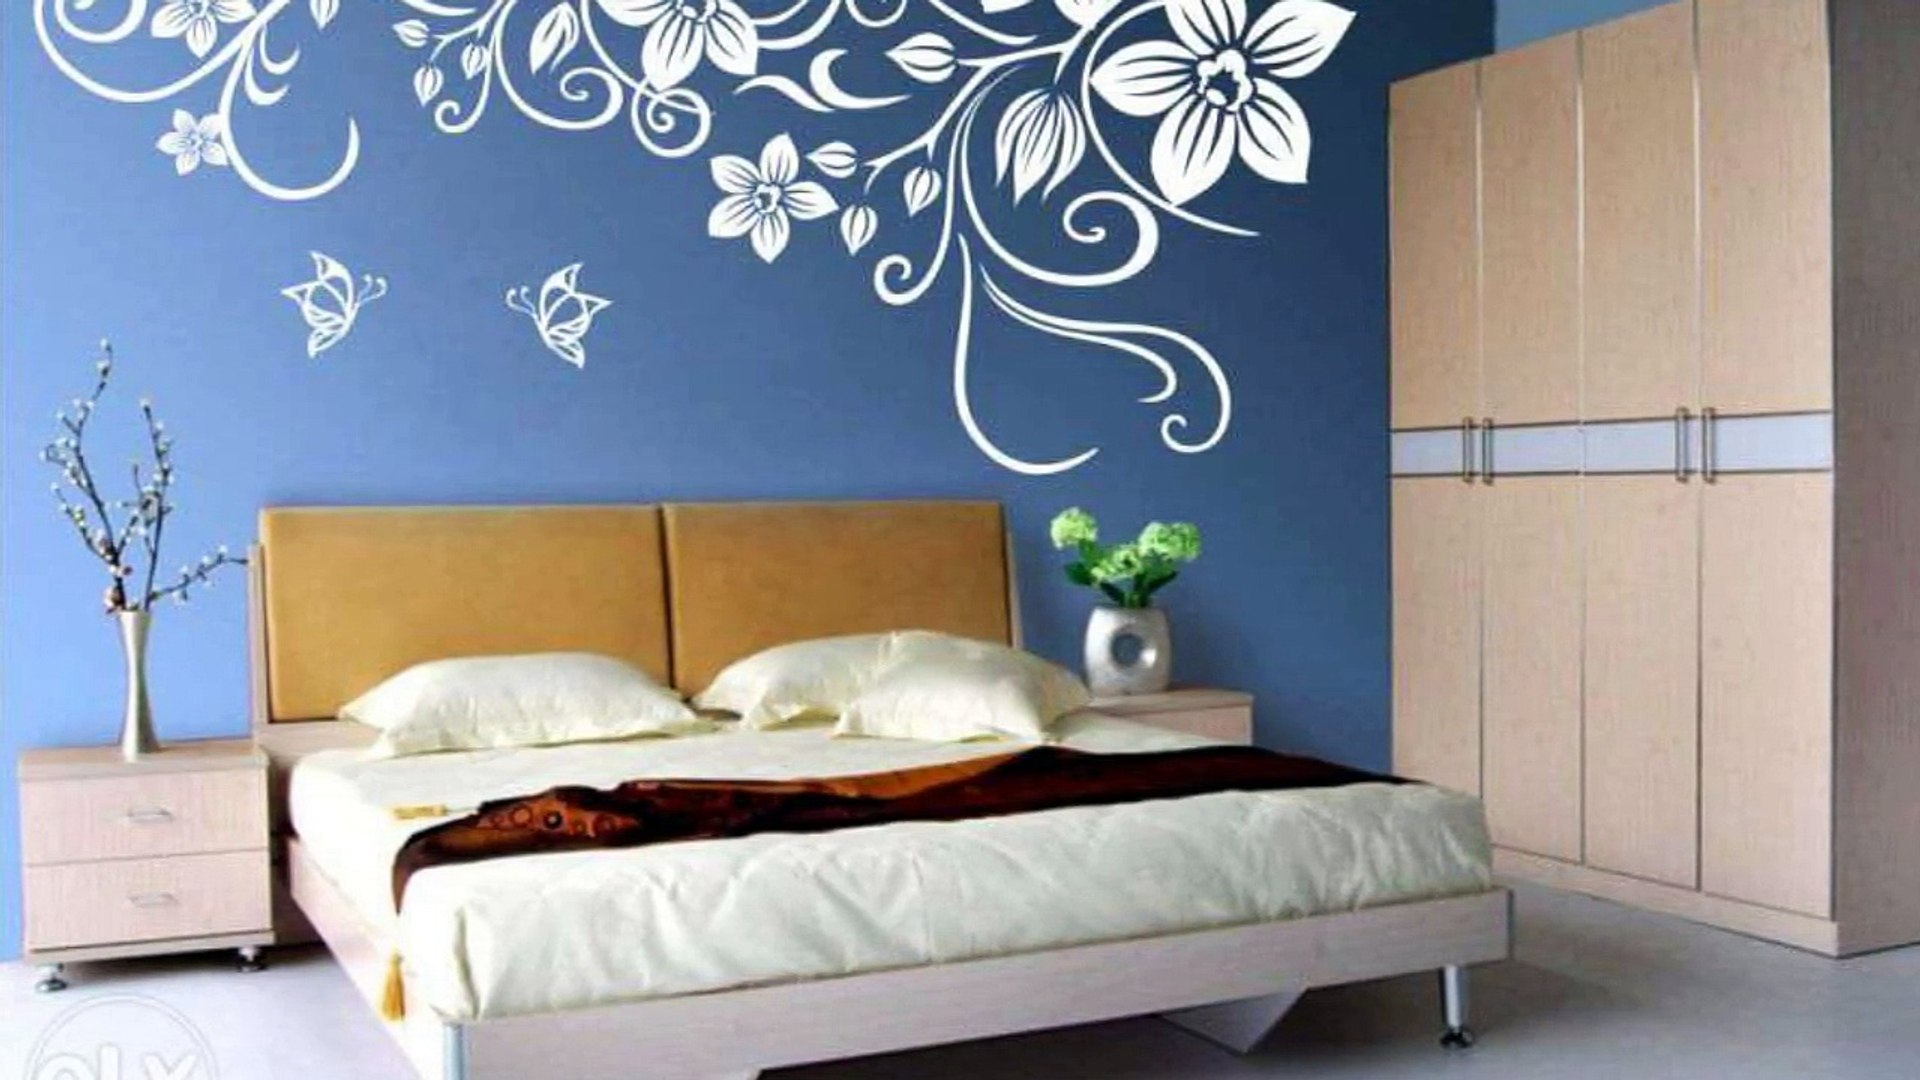 Wall Painting Ideas For Bedroom Design Video Dailymotion